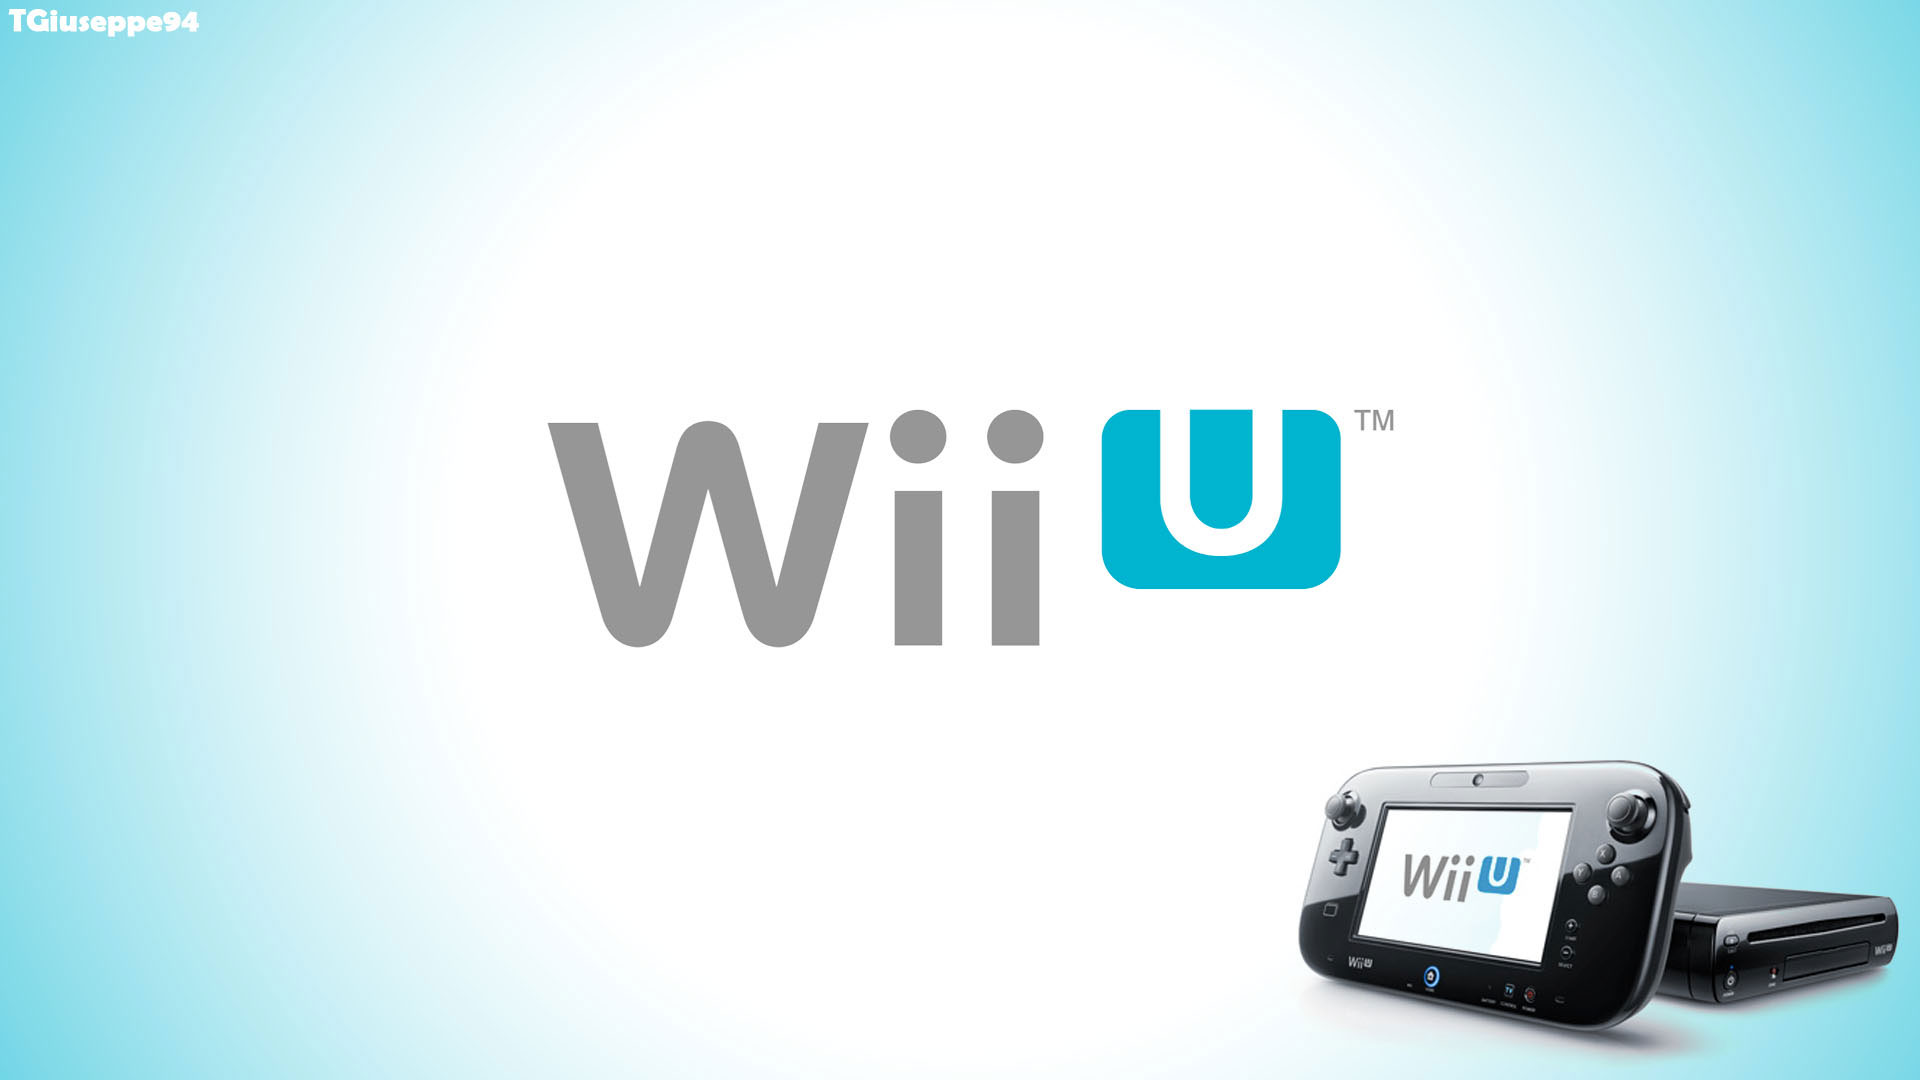 Nintendo Wii U Wallpaper - WallpaperSafari